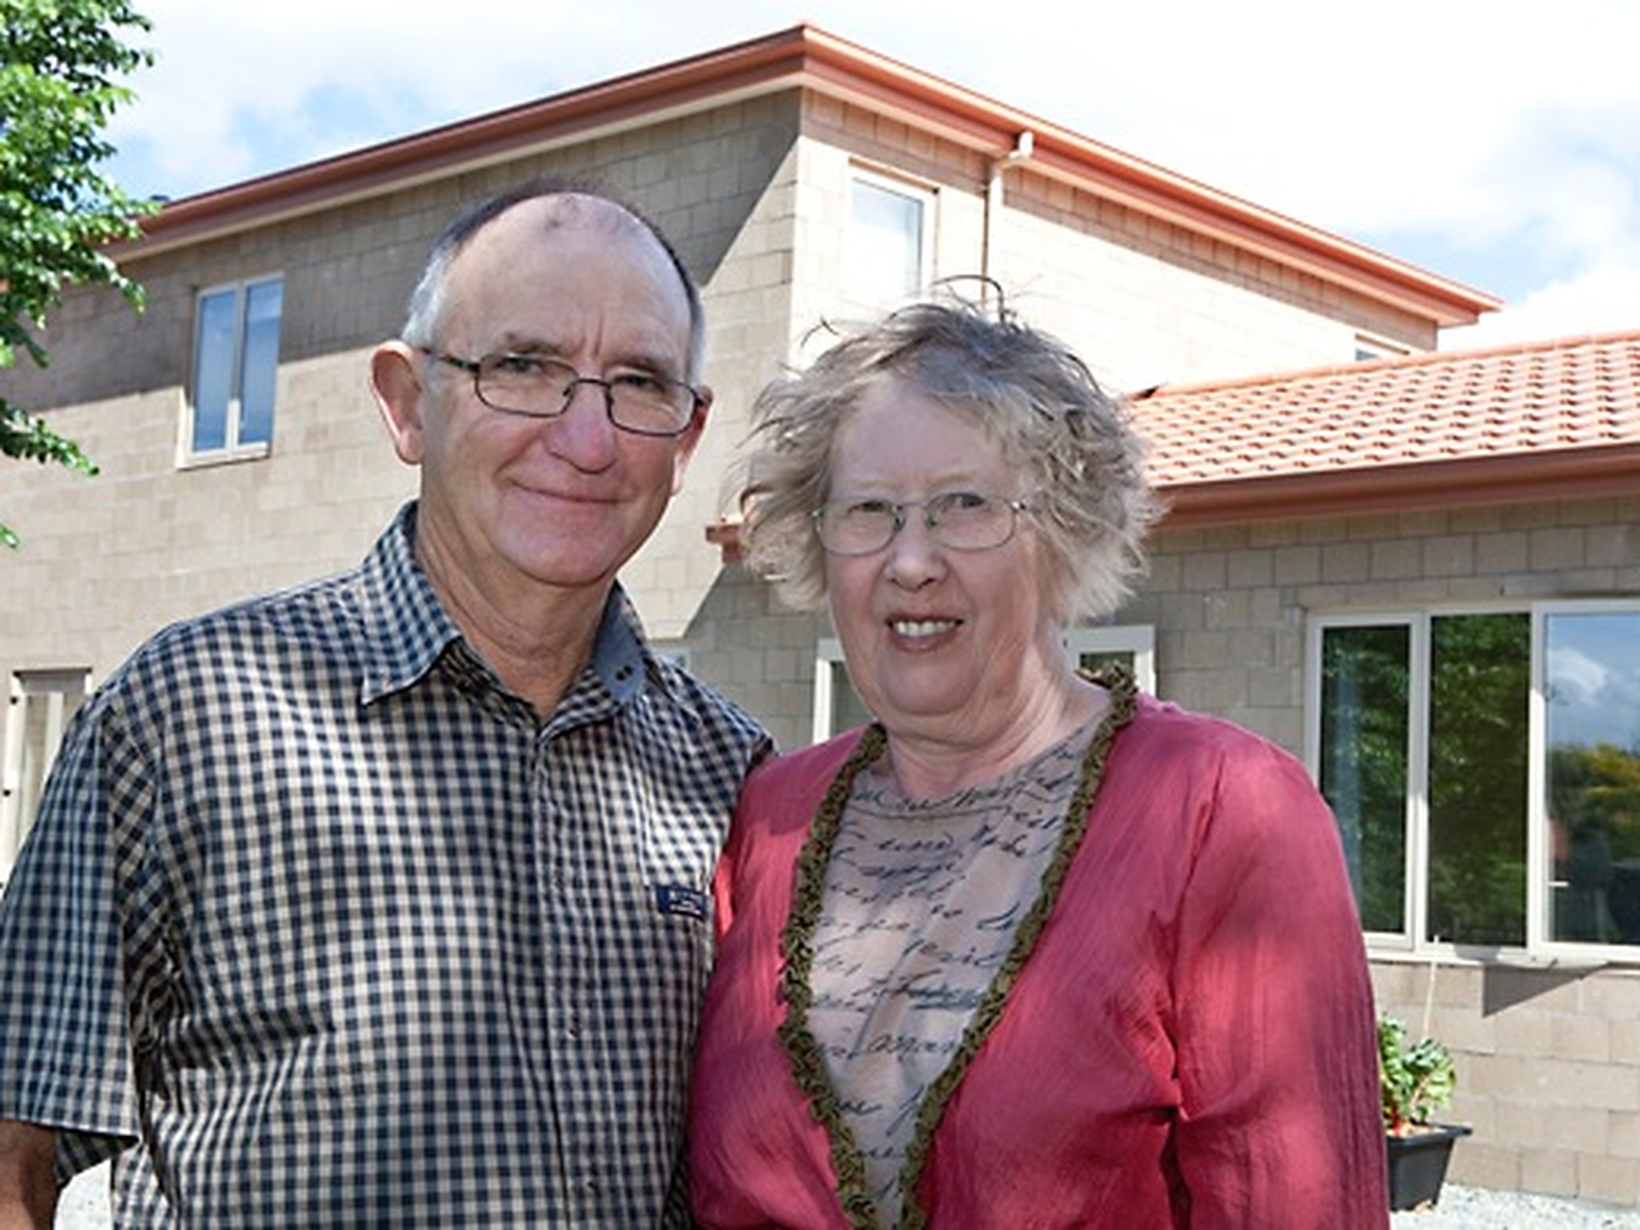 Suzanne & Paul from Blenheim, New Zealand